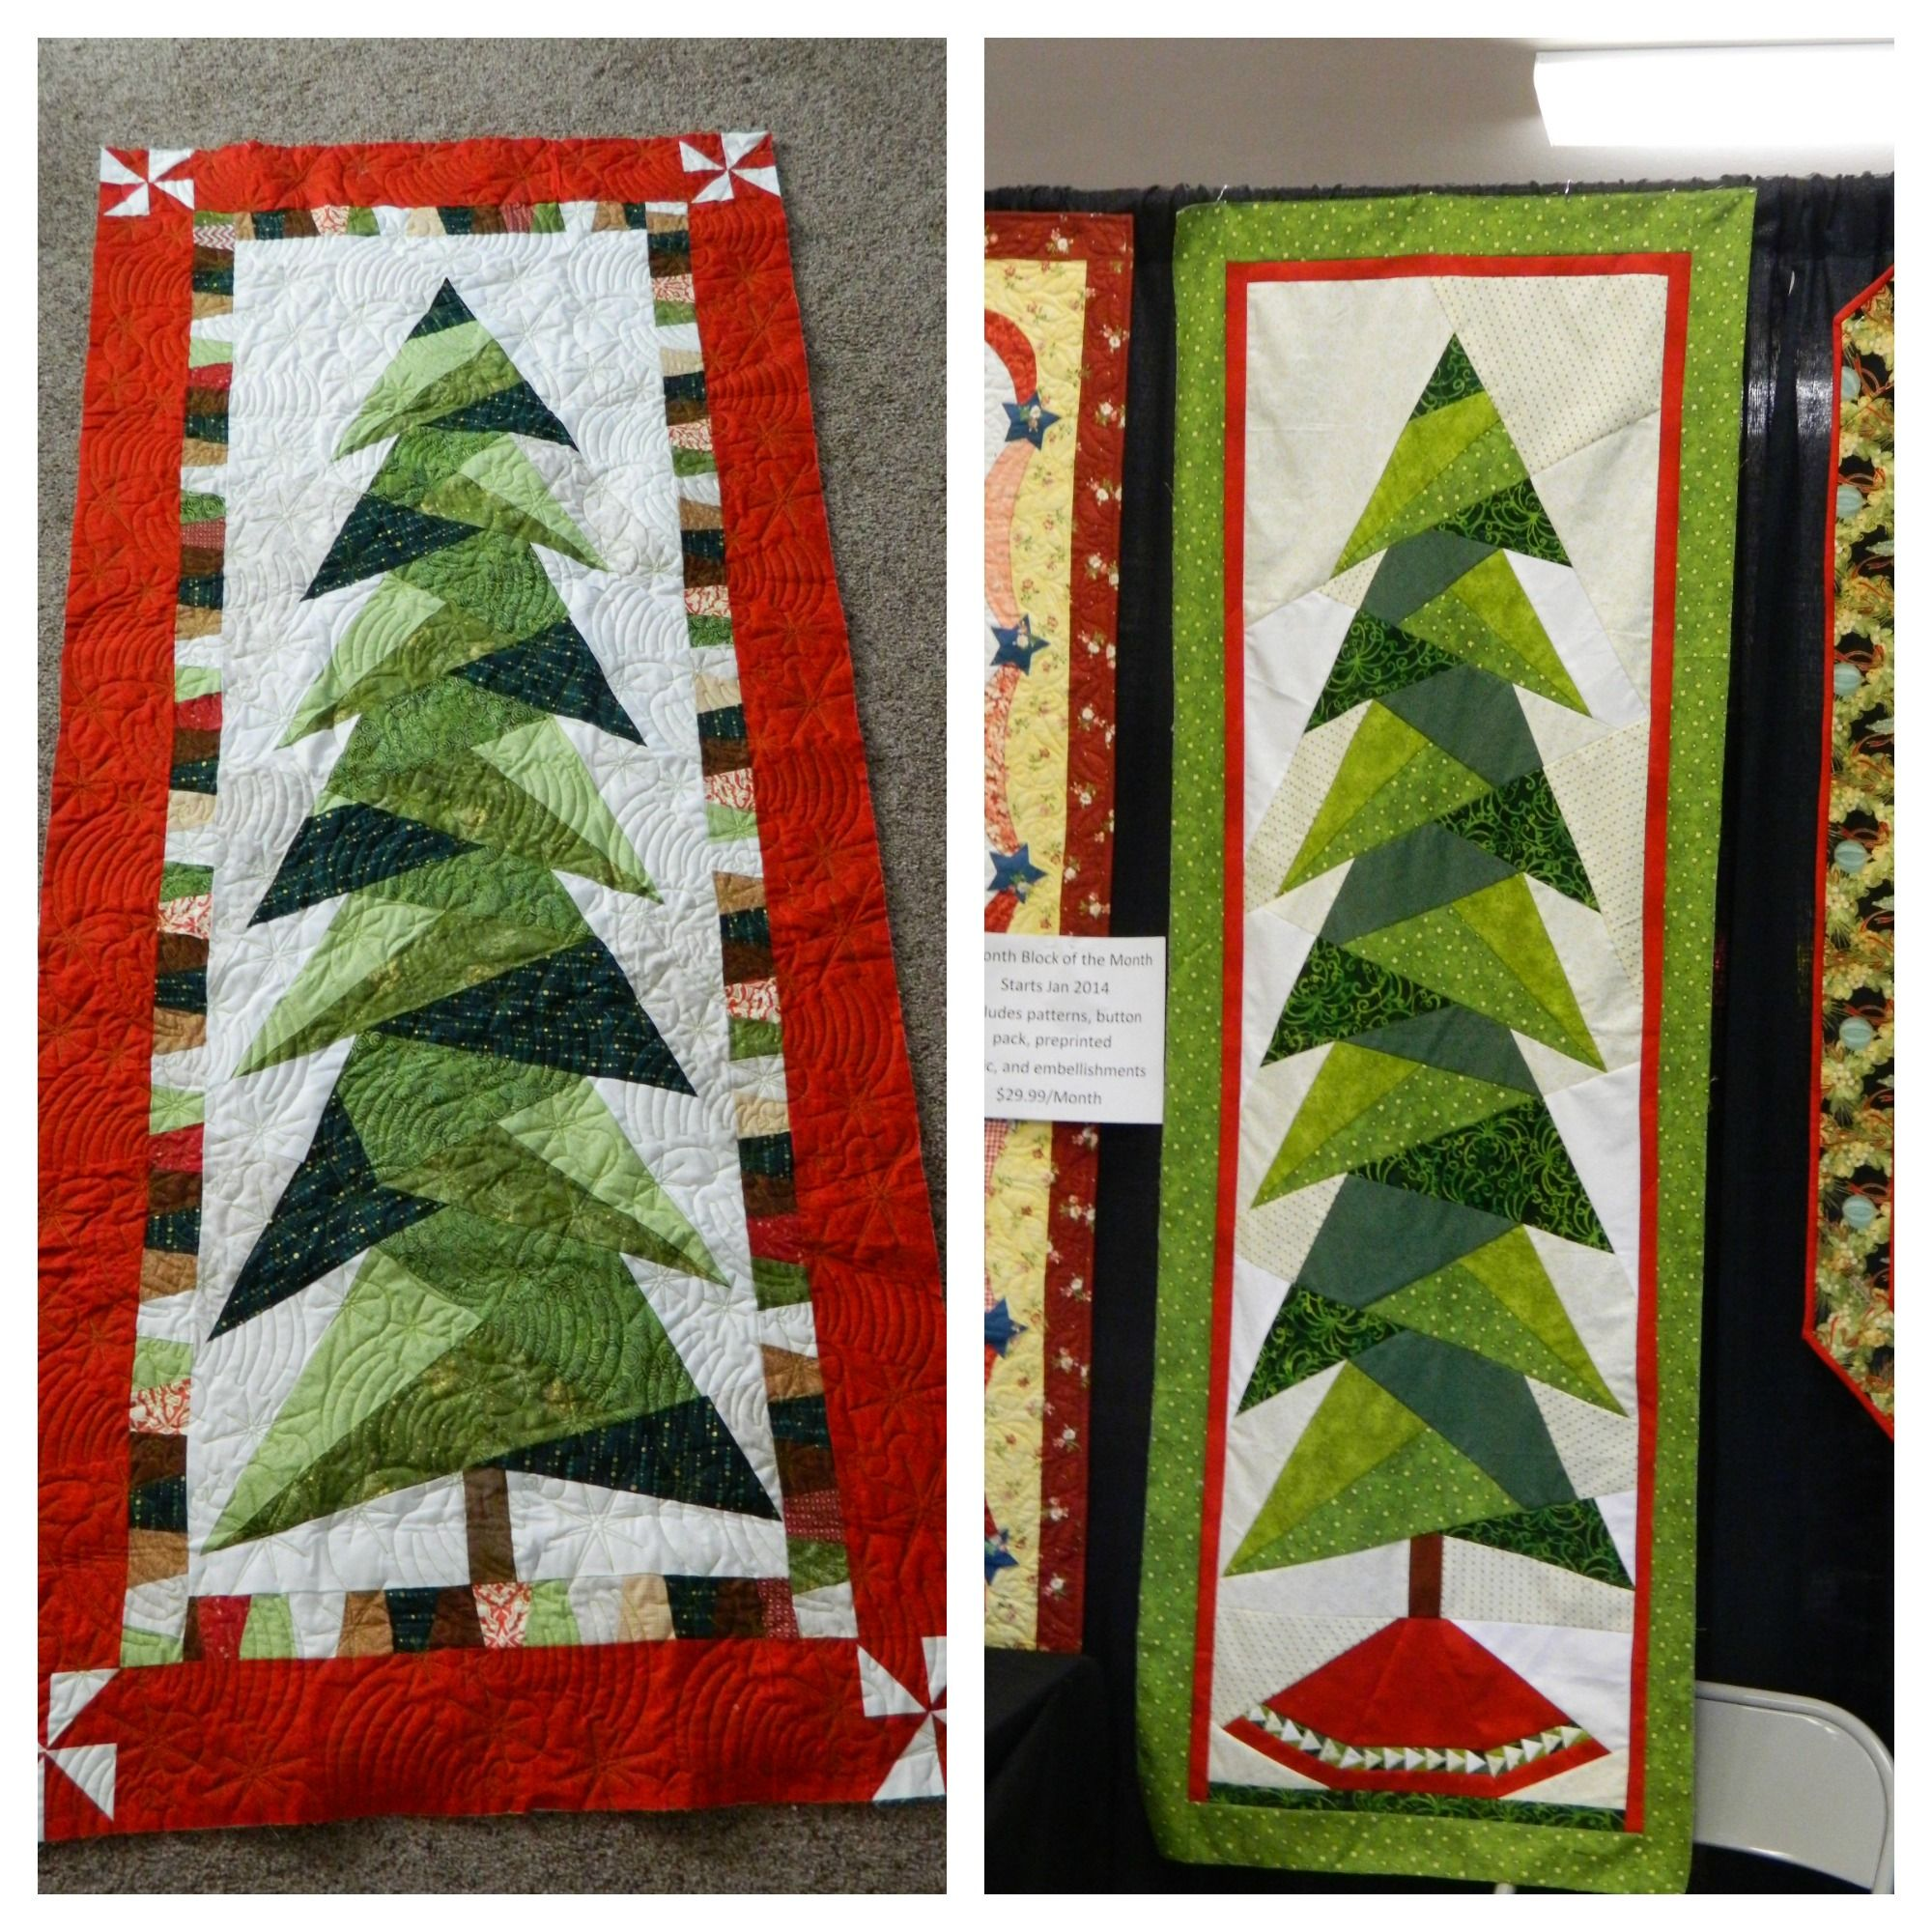 Tall Trim the Tree Quilt | Quilt Patterns I Have | Pinterest ... : apple tree quilting - Adamdwight.com